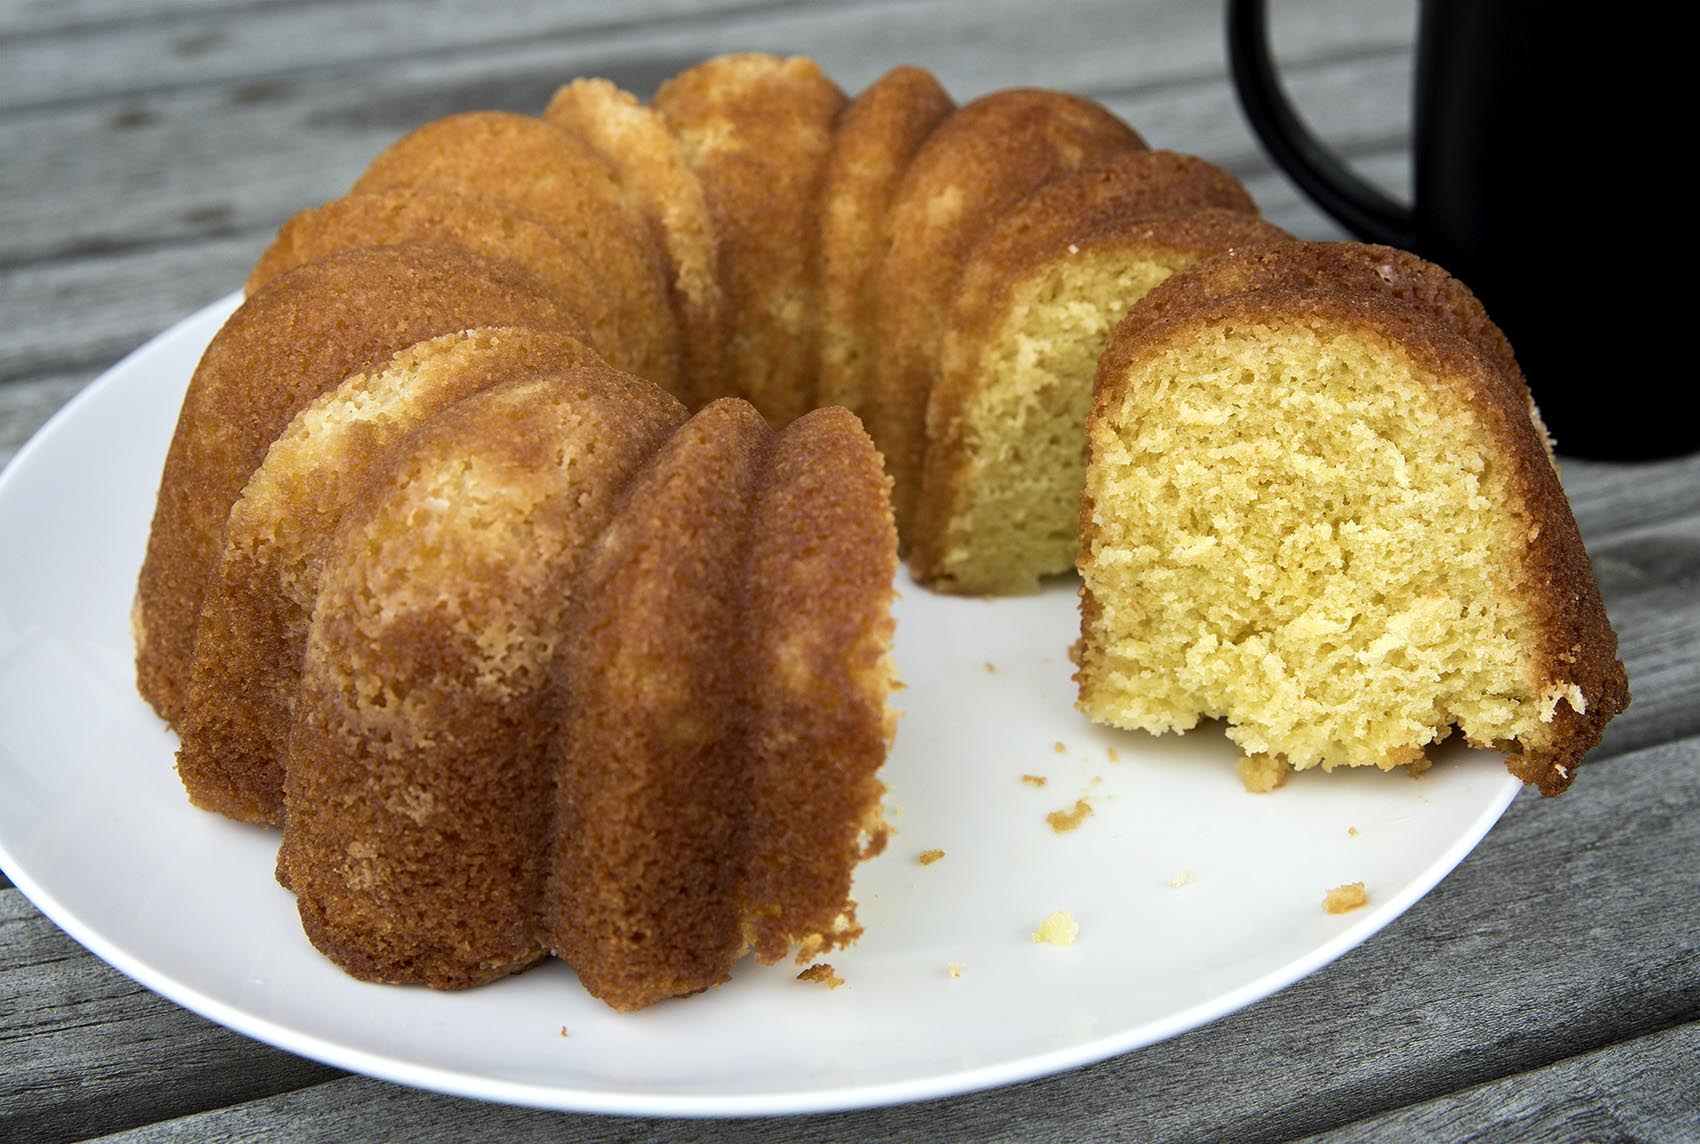 Chef Kathy Gunst's sour cream lemon bundt cake. (Robin Lubbock/WBUR)